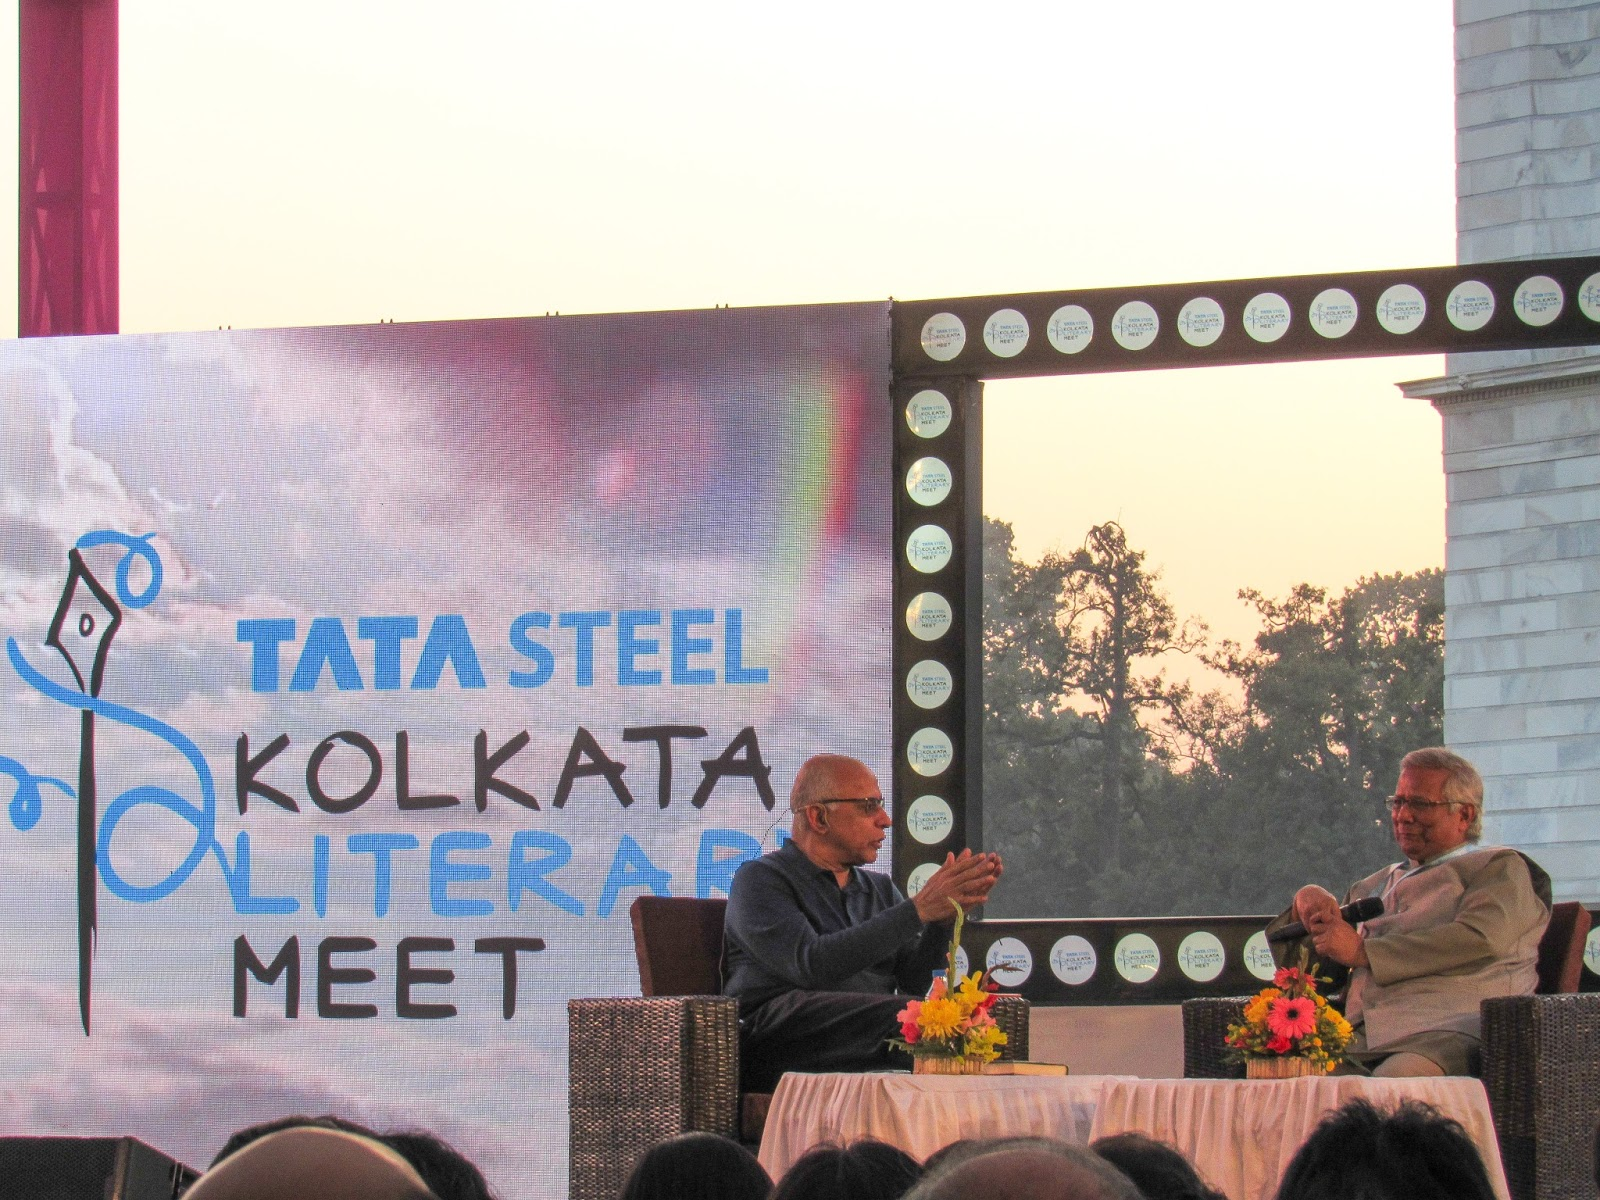 Mr. Subroto Bagchi and Dr. Muhammad Yunus - tata steel kolkata literary meet 2018